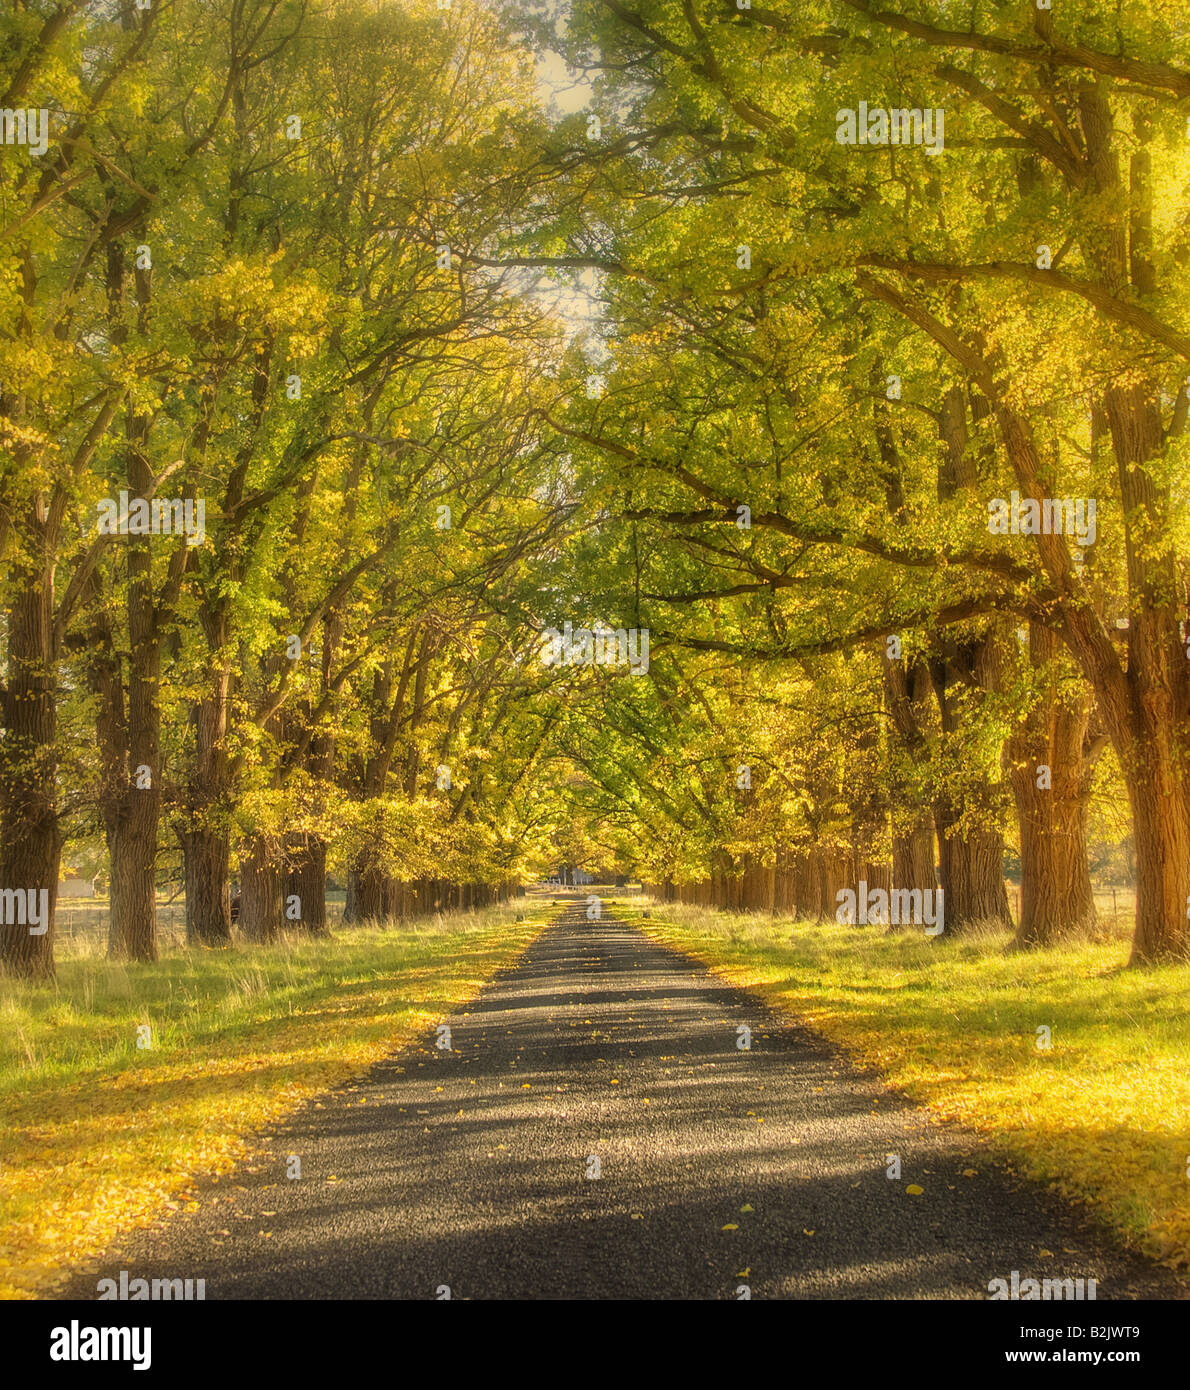 soft and dreamy yellow tree lined road in autumn or fall - Stock Image